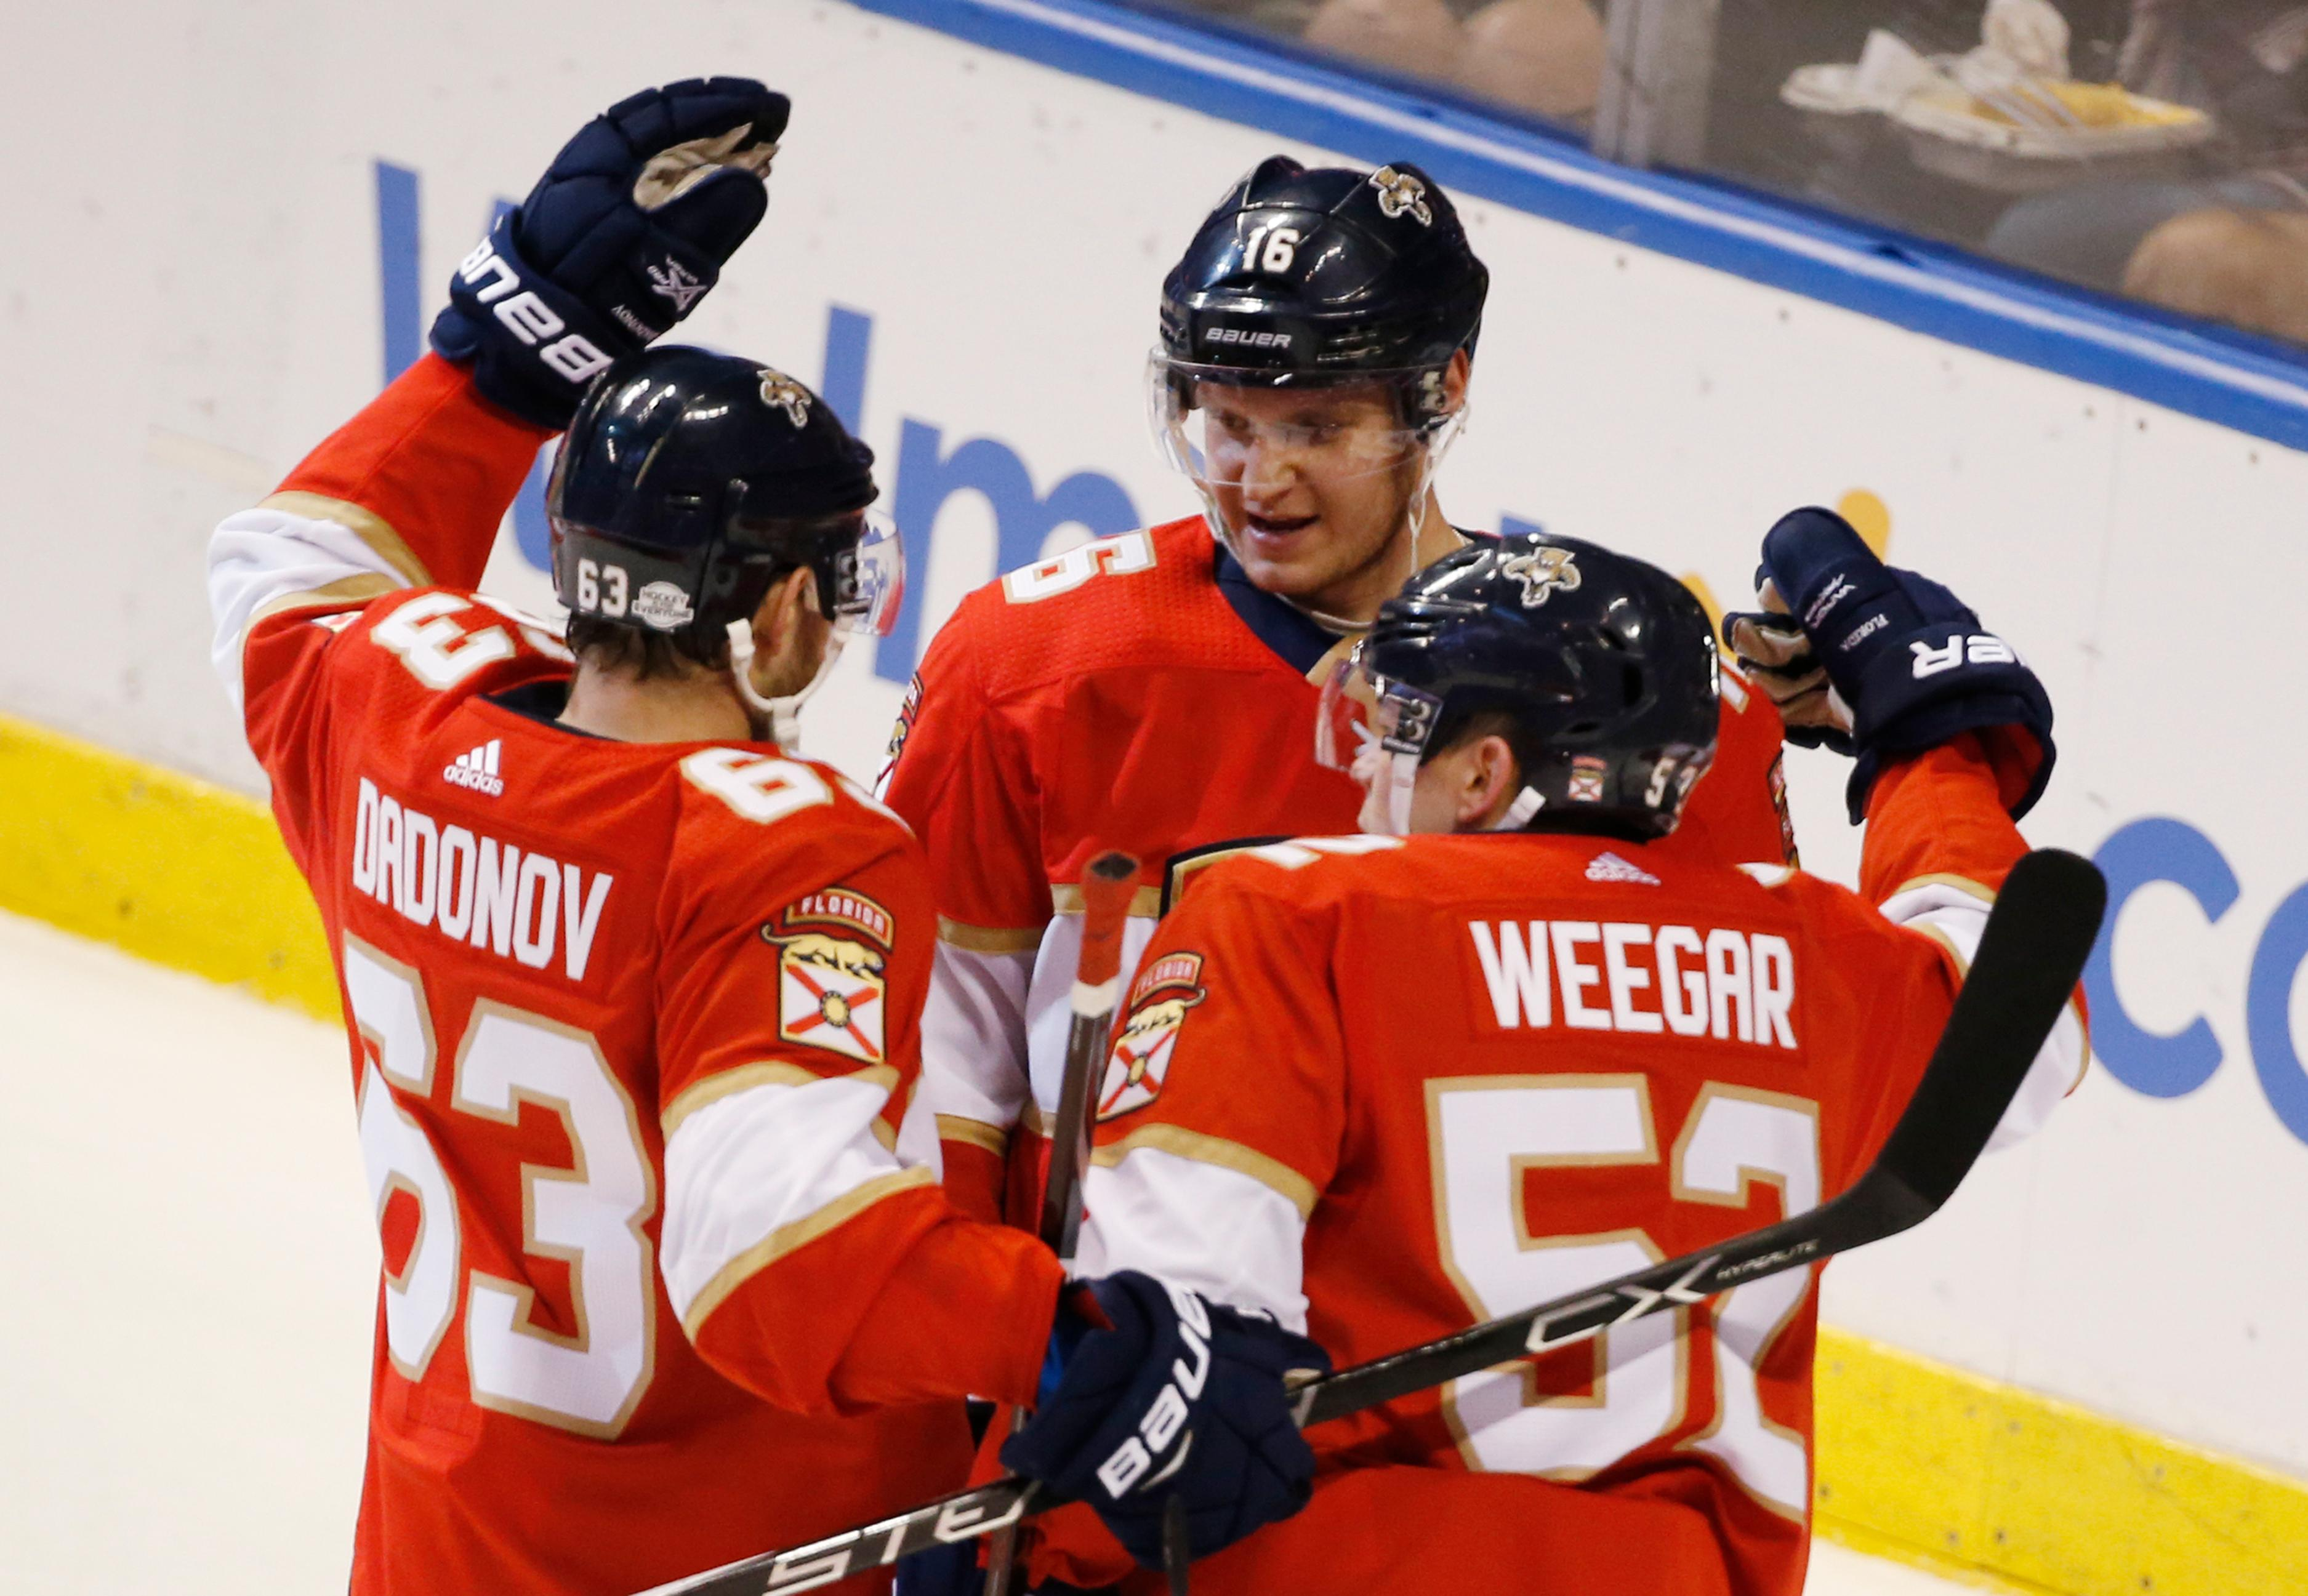 Florida Panthers right wing Evgenii Dadonov (63) and defenseman MacKenzie Weegar (52) congratulate center Aleksander Barkov (16) after Barkov scored a goal during the second period of an NHL hockey game against the Detroit Red Wings, Saturday, Feb. 3, 2018 in Sunrise, Fla. (AP Photo/Wilfredo Lee)